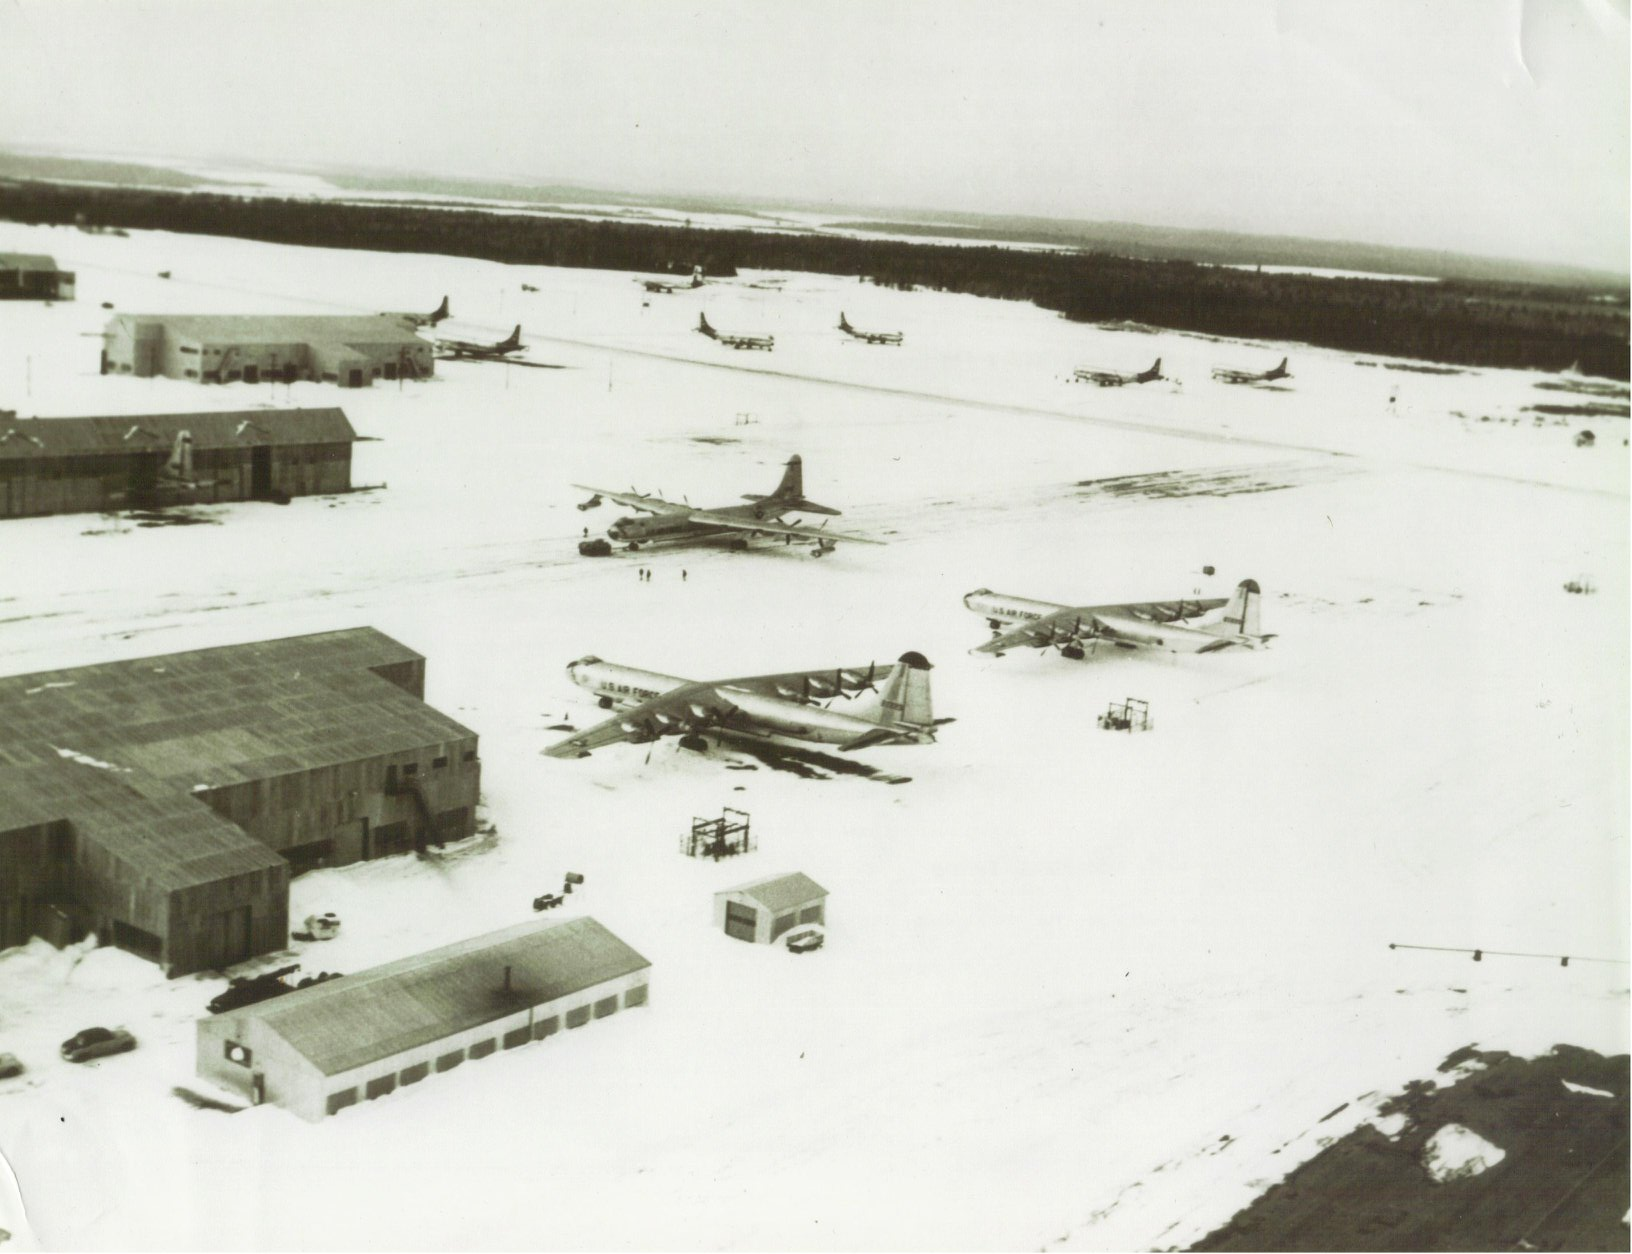 loring_afb_flight_line_winter_of_56_kc-97s_parked_in_the_background.jpg